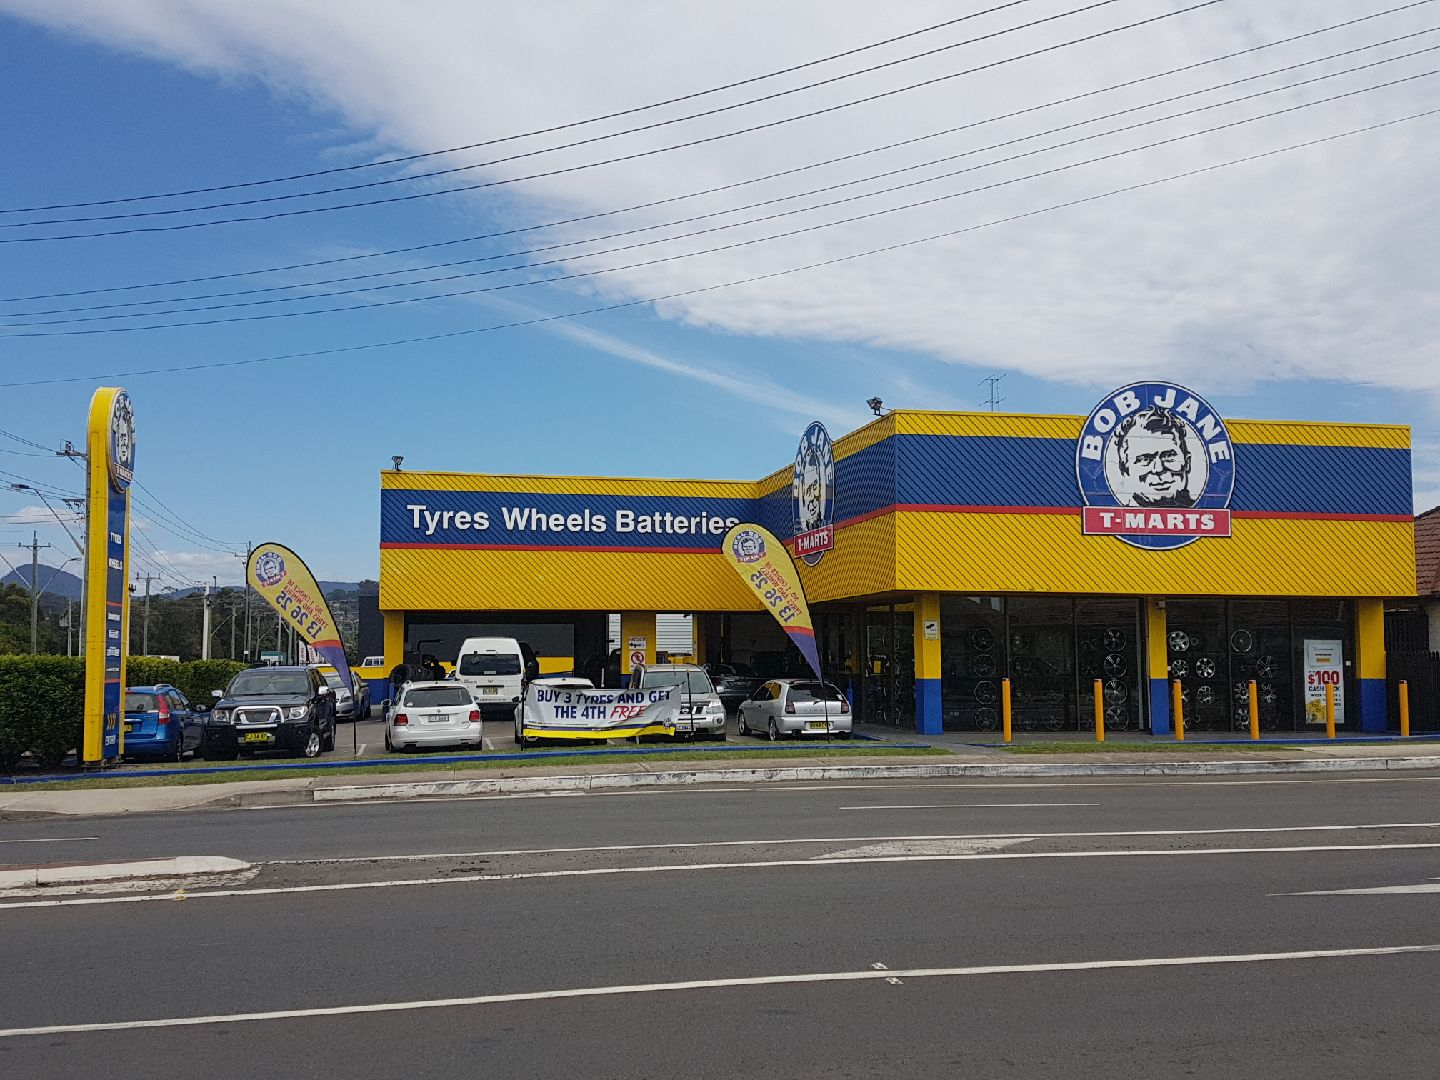 Bob Jane T-Marts Wollongong Franchise Opportunity (Tyres, Wheels & Batteries)